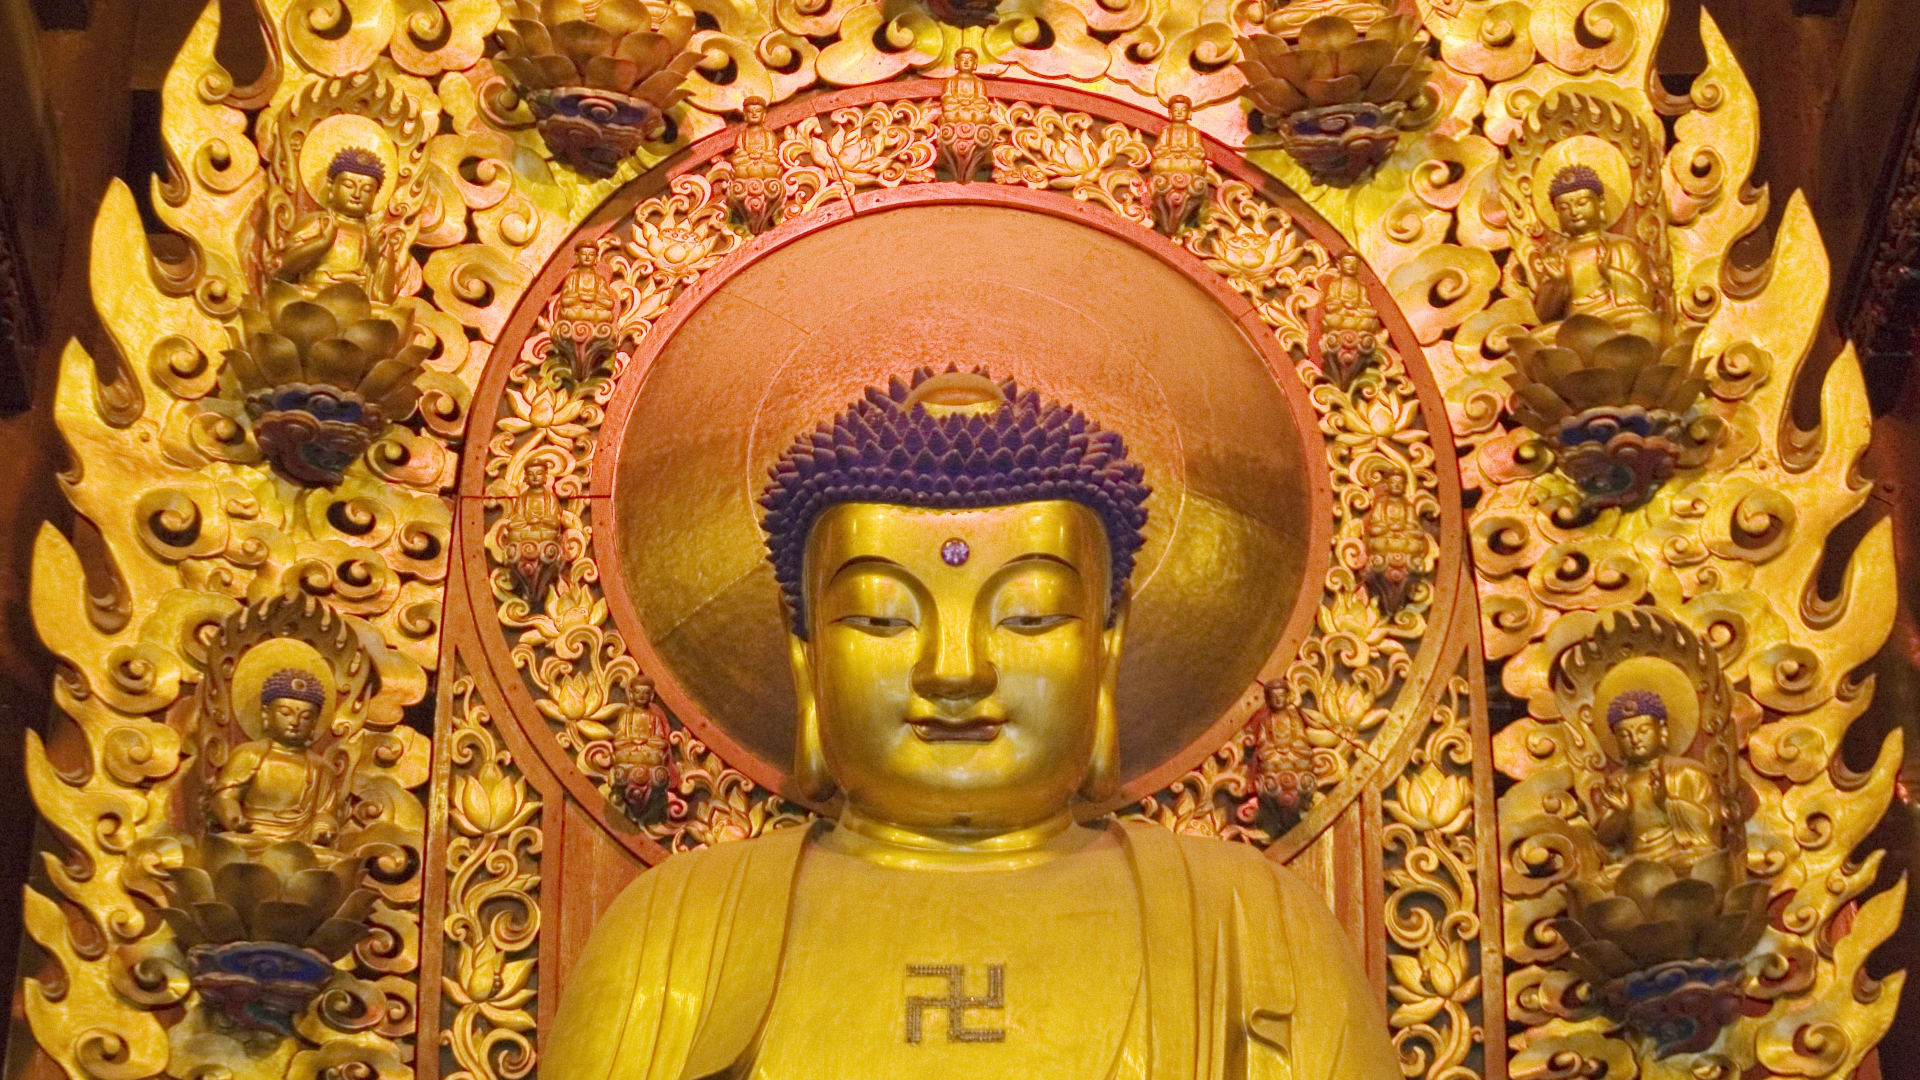 Gold Buddha figures at Longhua Temple, the oldest temple in Shanghai. (Credit: In Pictures Ltd./Corbis via Getty Images)